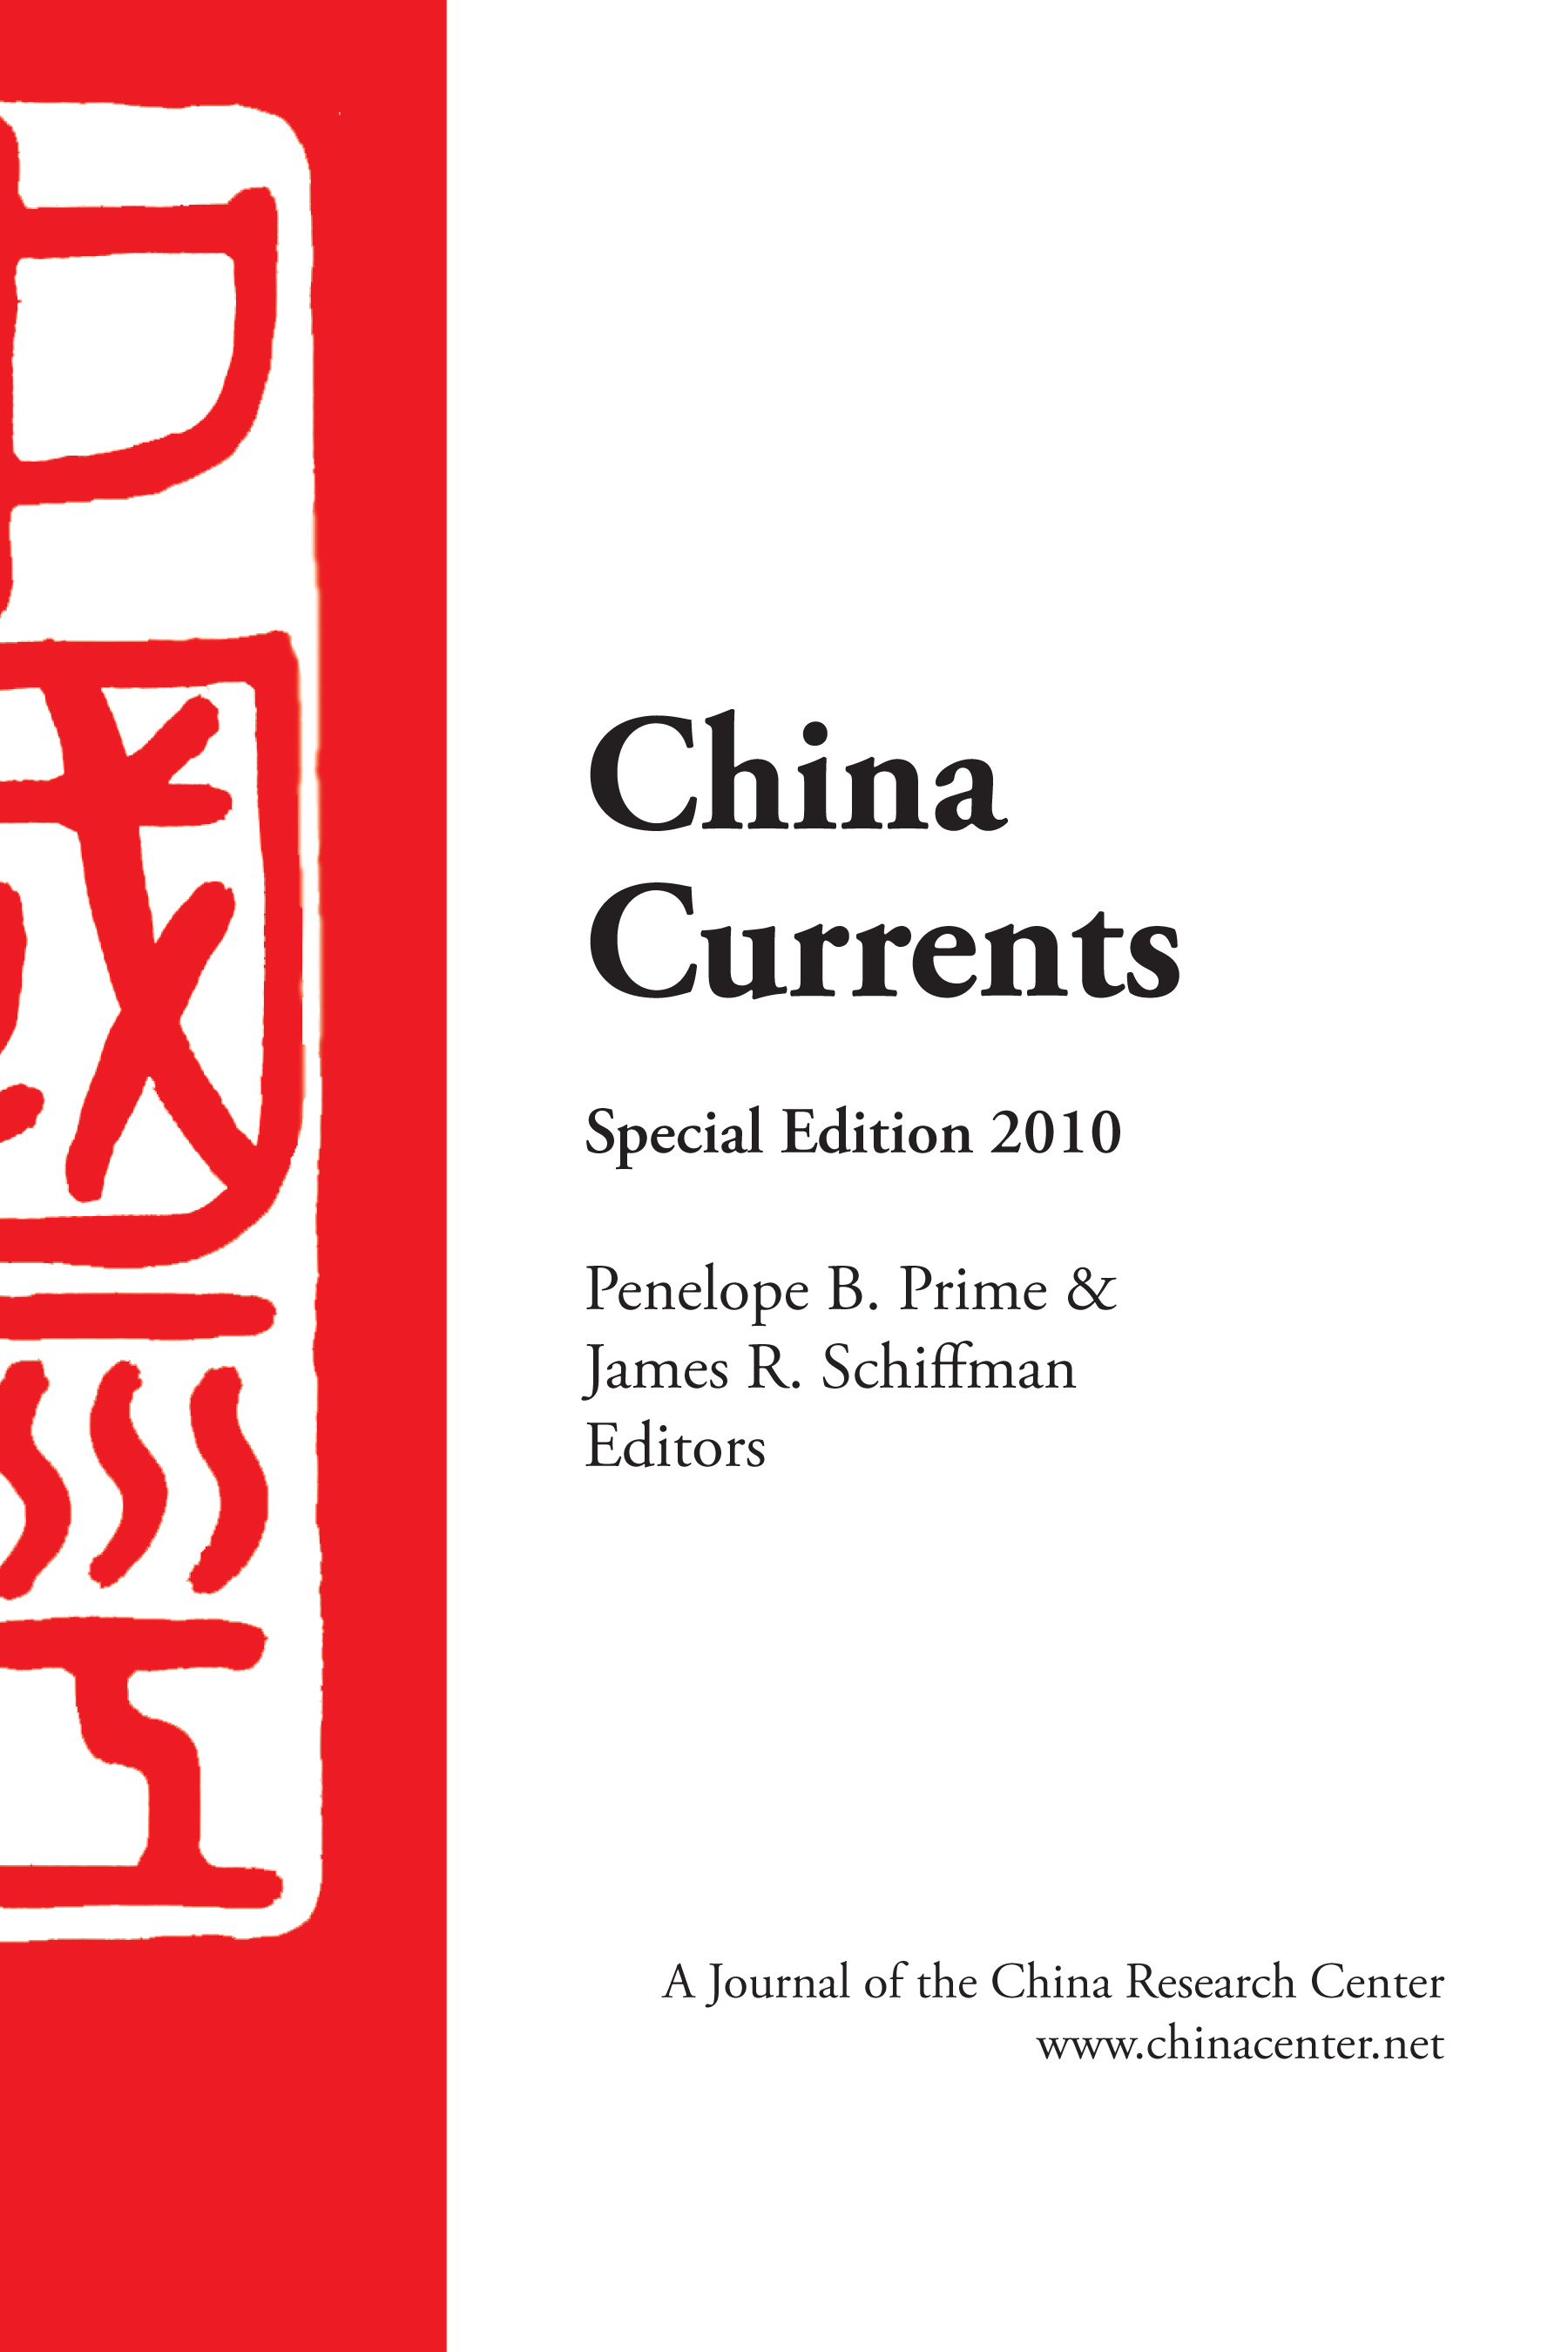 China Currents Special Edition 2010